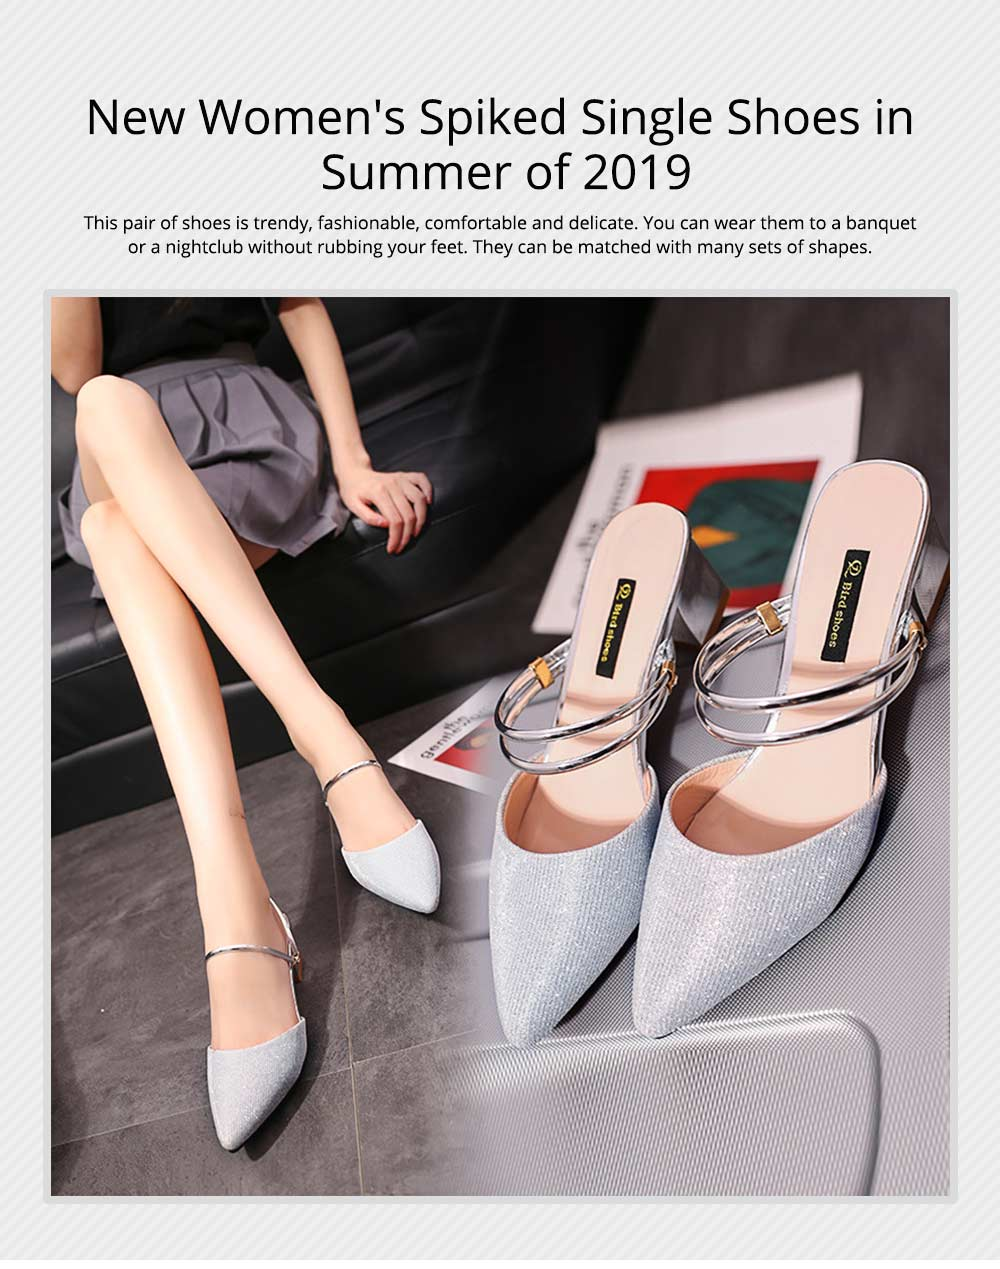 New Women's Spiked Single Shoes 2019 Summer, Coarse-heeled Golden Silver Sandals for Night Club 0